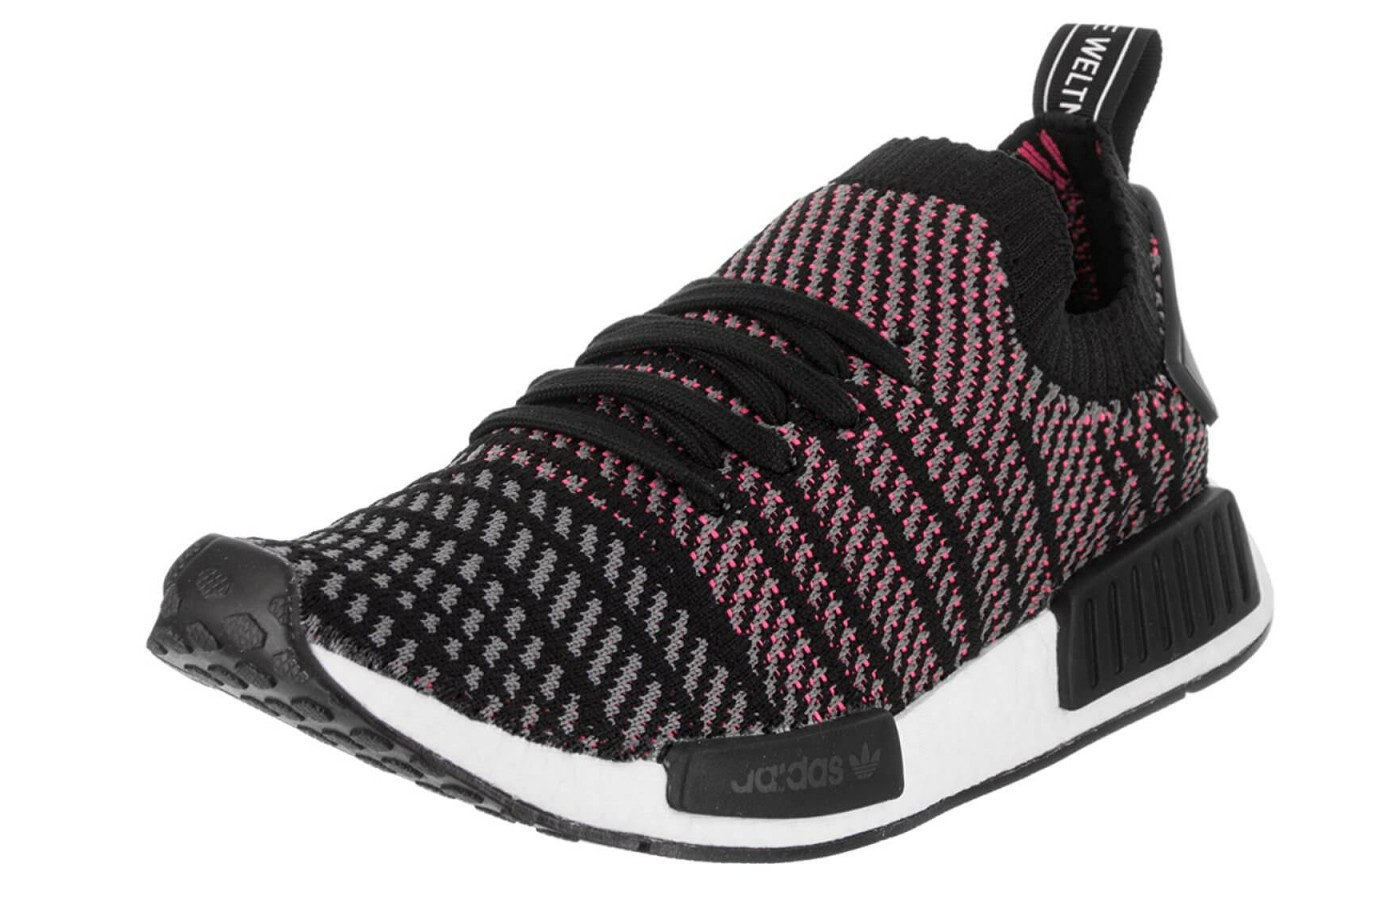 a0f094e3d The Adidas NMD R1 Stlt Primeknit features a Primeknit upper ...